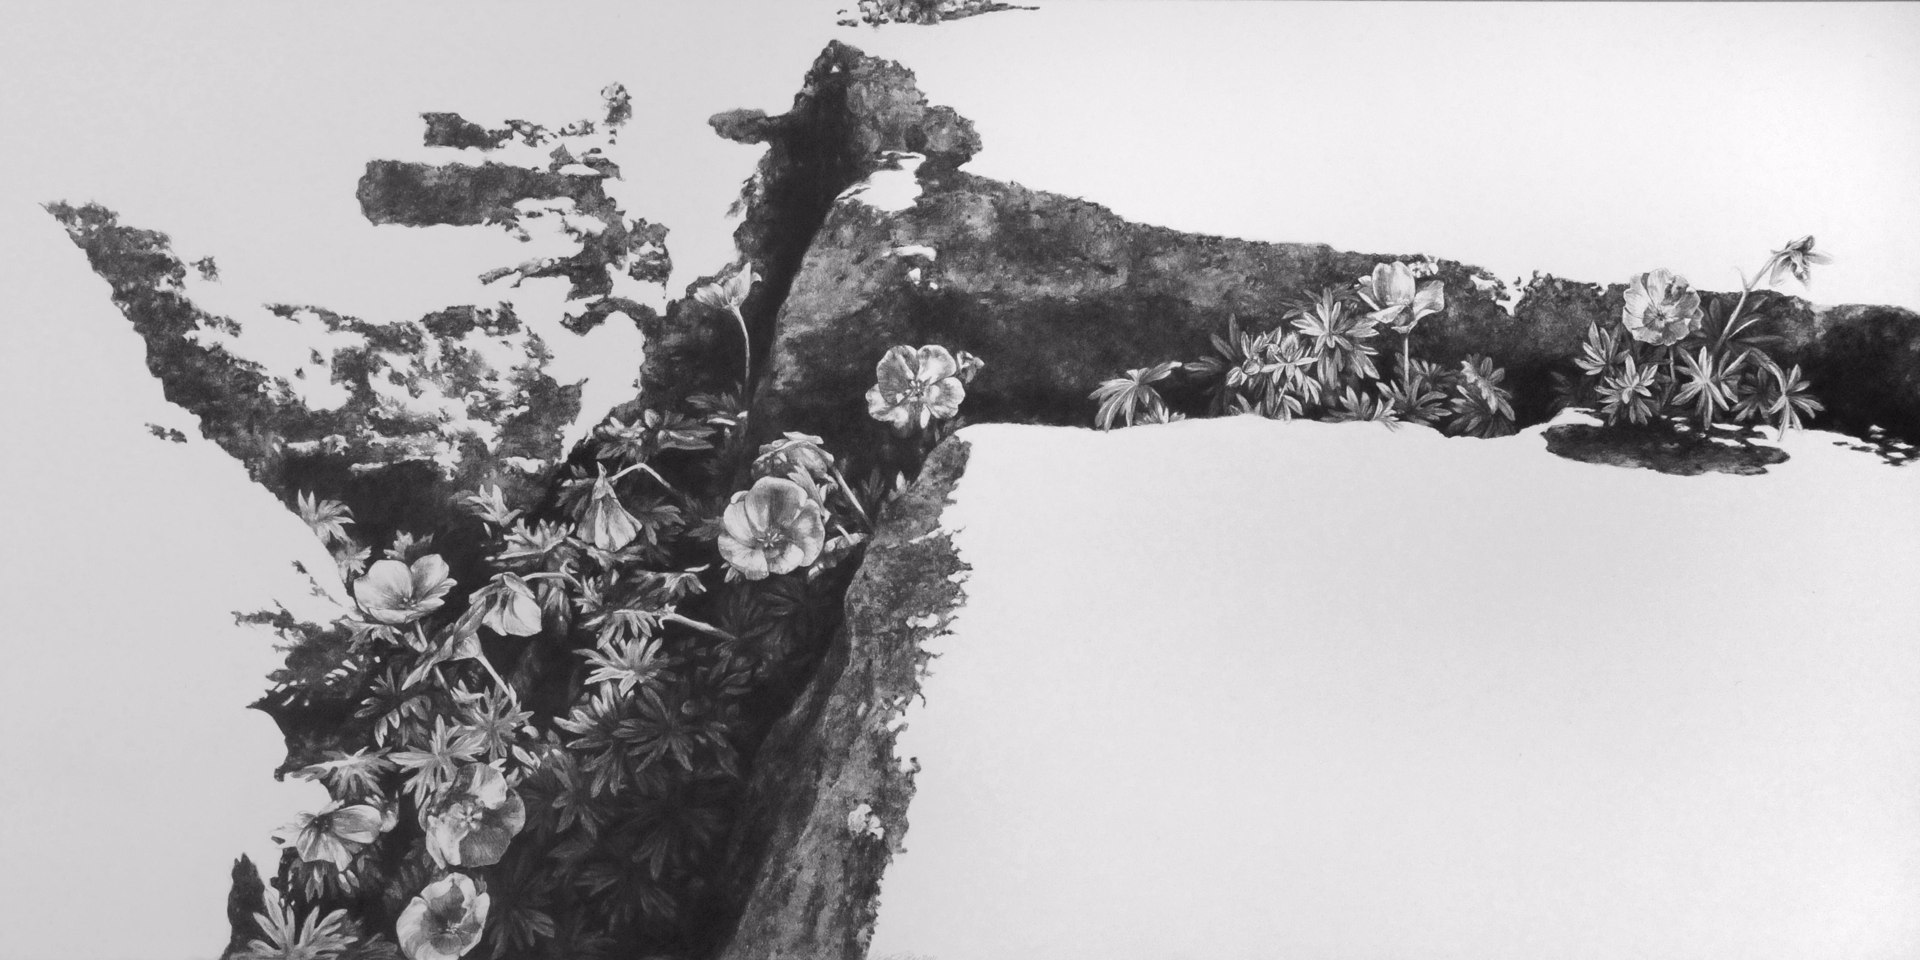 The Fertile Rock III , 2011. Graphite on clayboard.12 x 24 inches.  Available